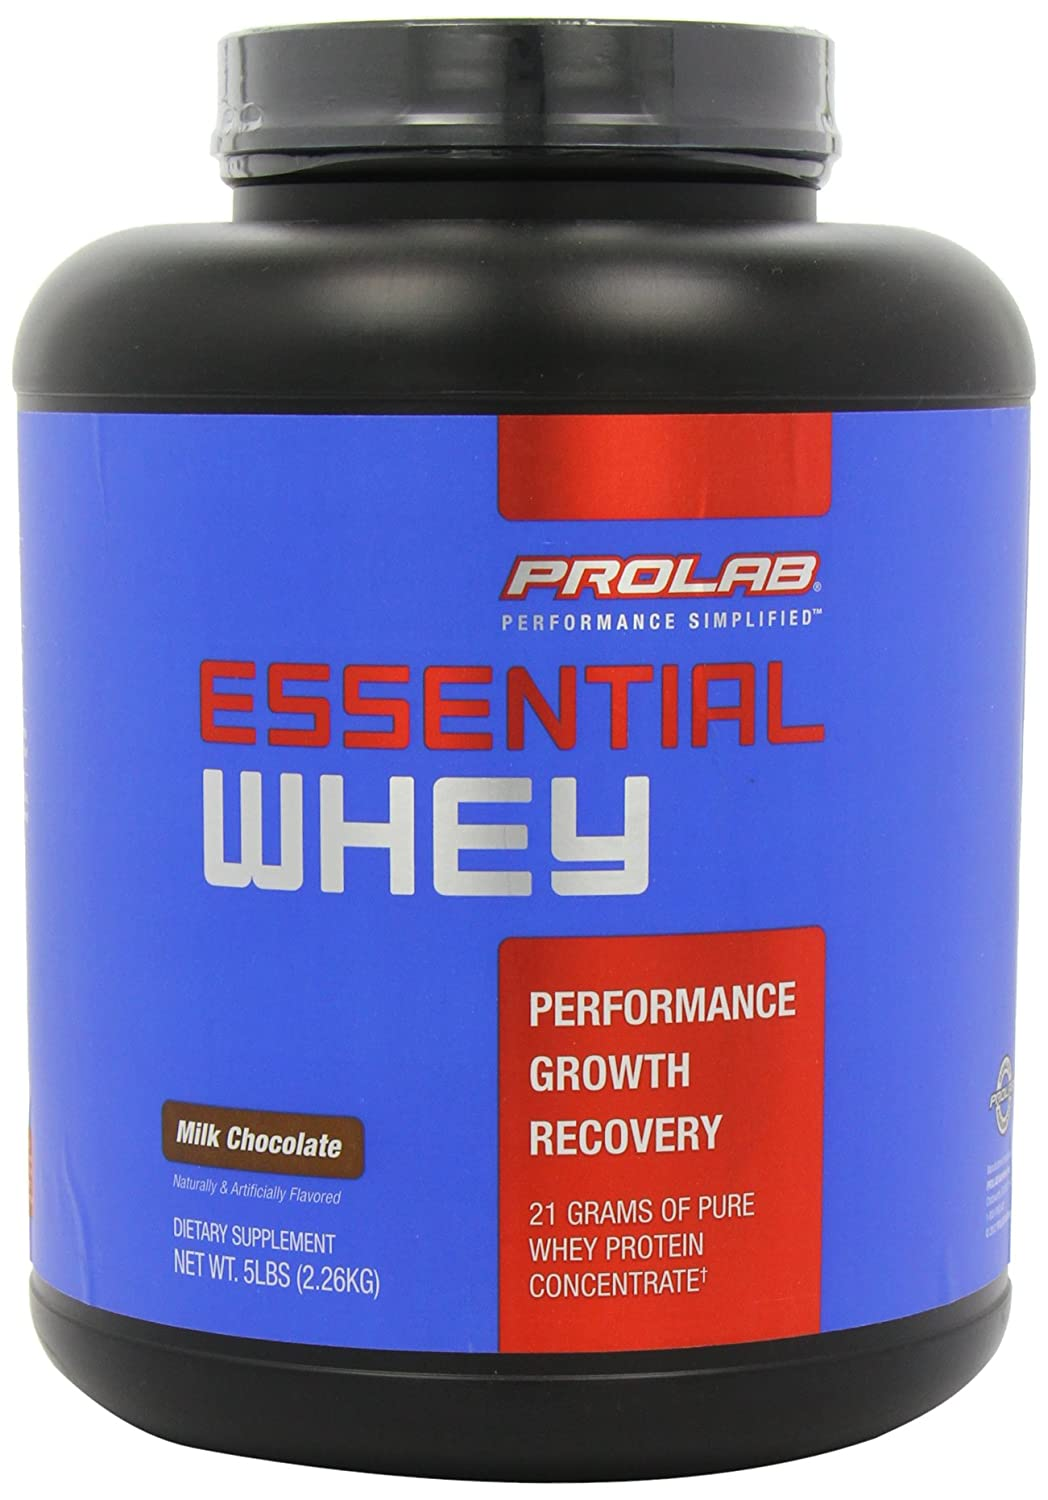 Buy Prolab Pure Whey Powder 5 Lbs Chocolate Online At Low Prices Makarimshirt Coklat Susu In India